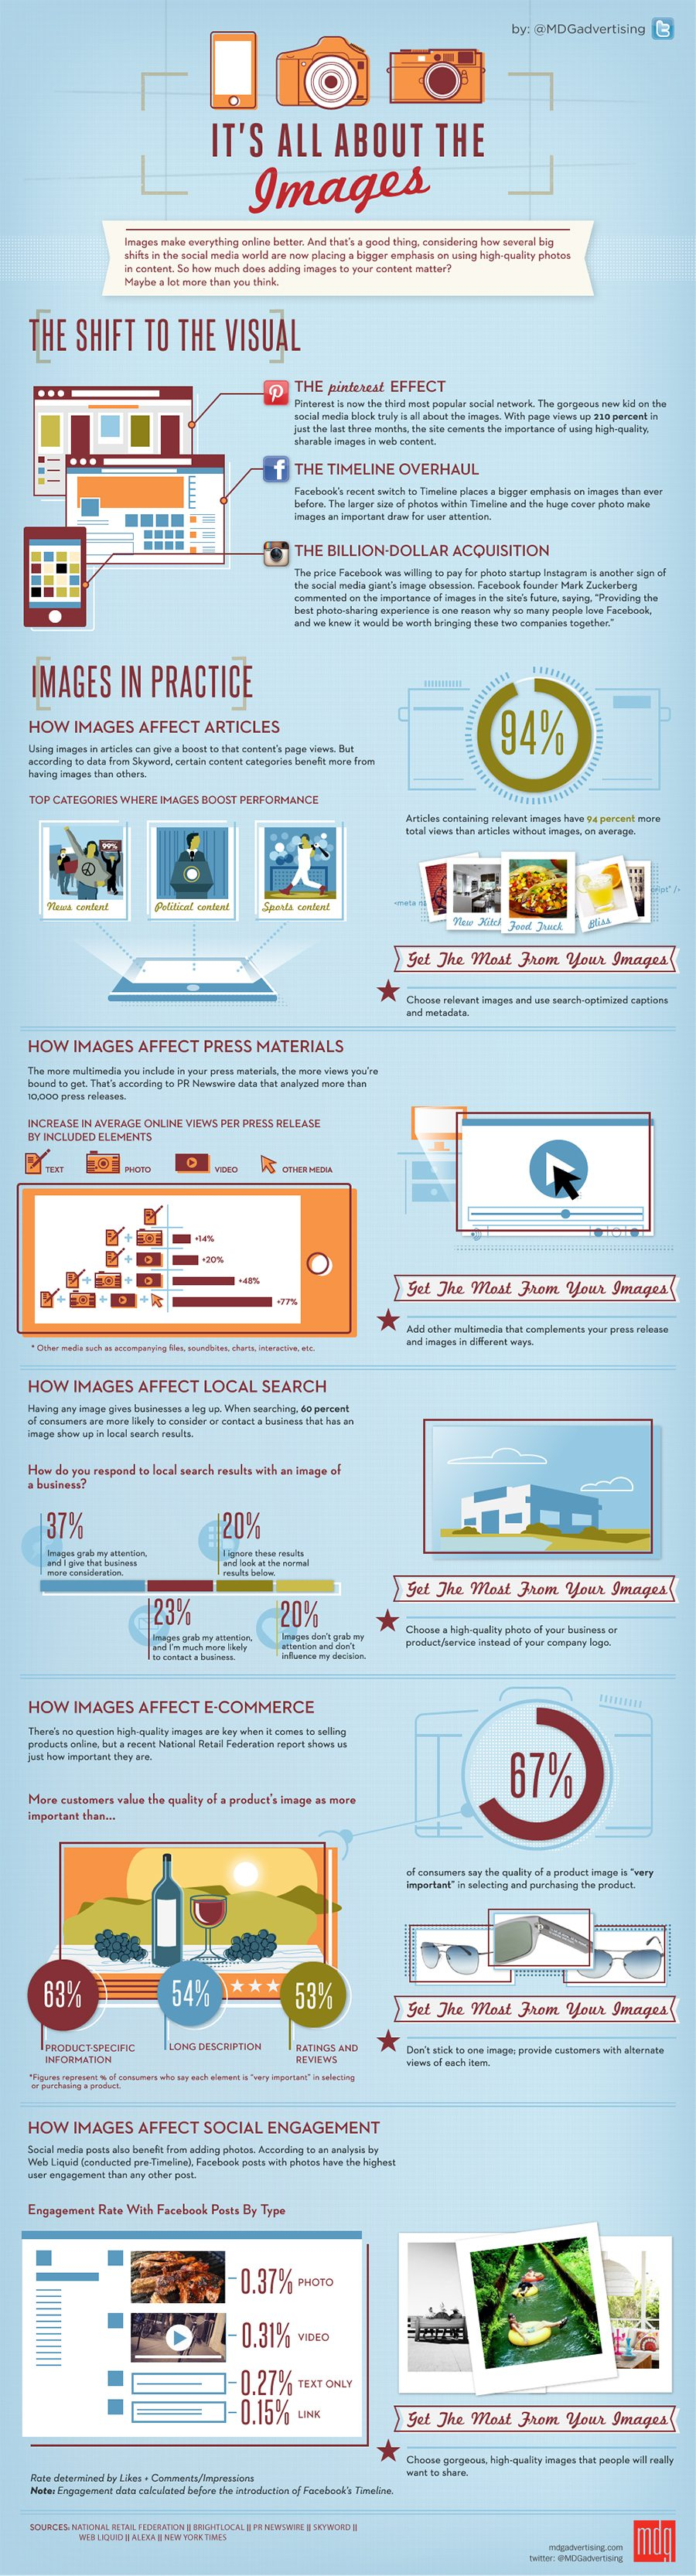 Lincoln NE Web Design and Development - 10-Reasons-You-Should-Use-More-Images-in-Your-Marketing-Strategy-1